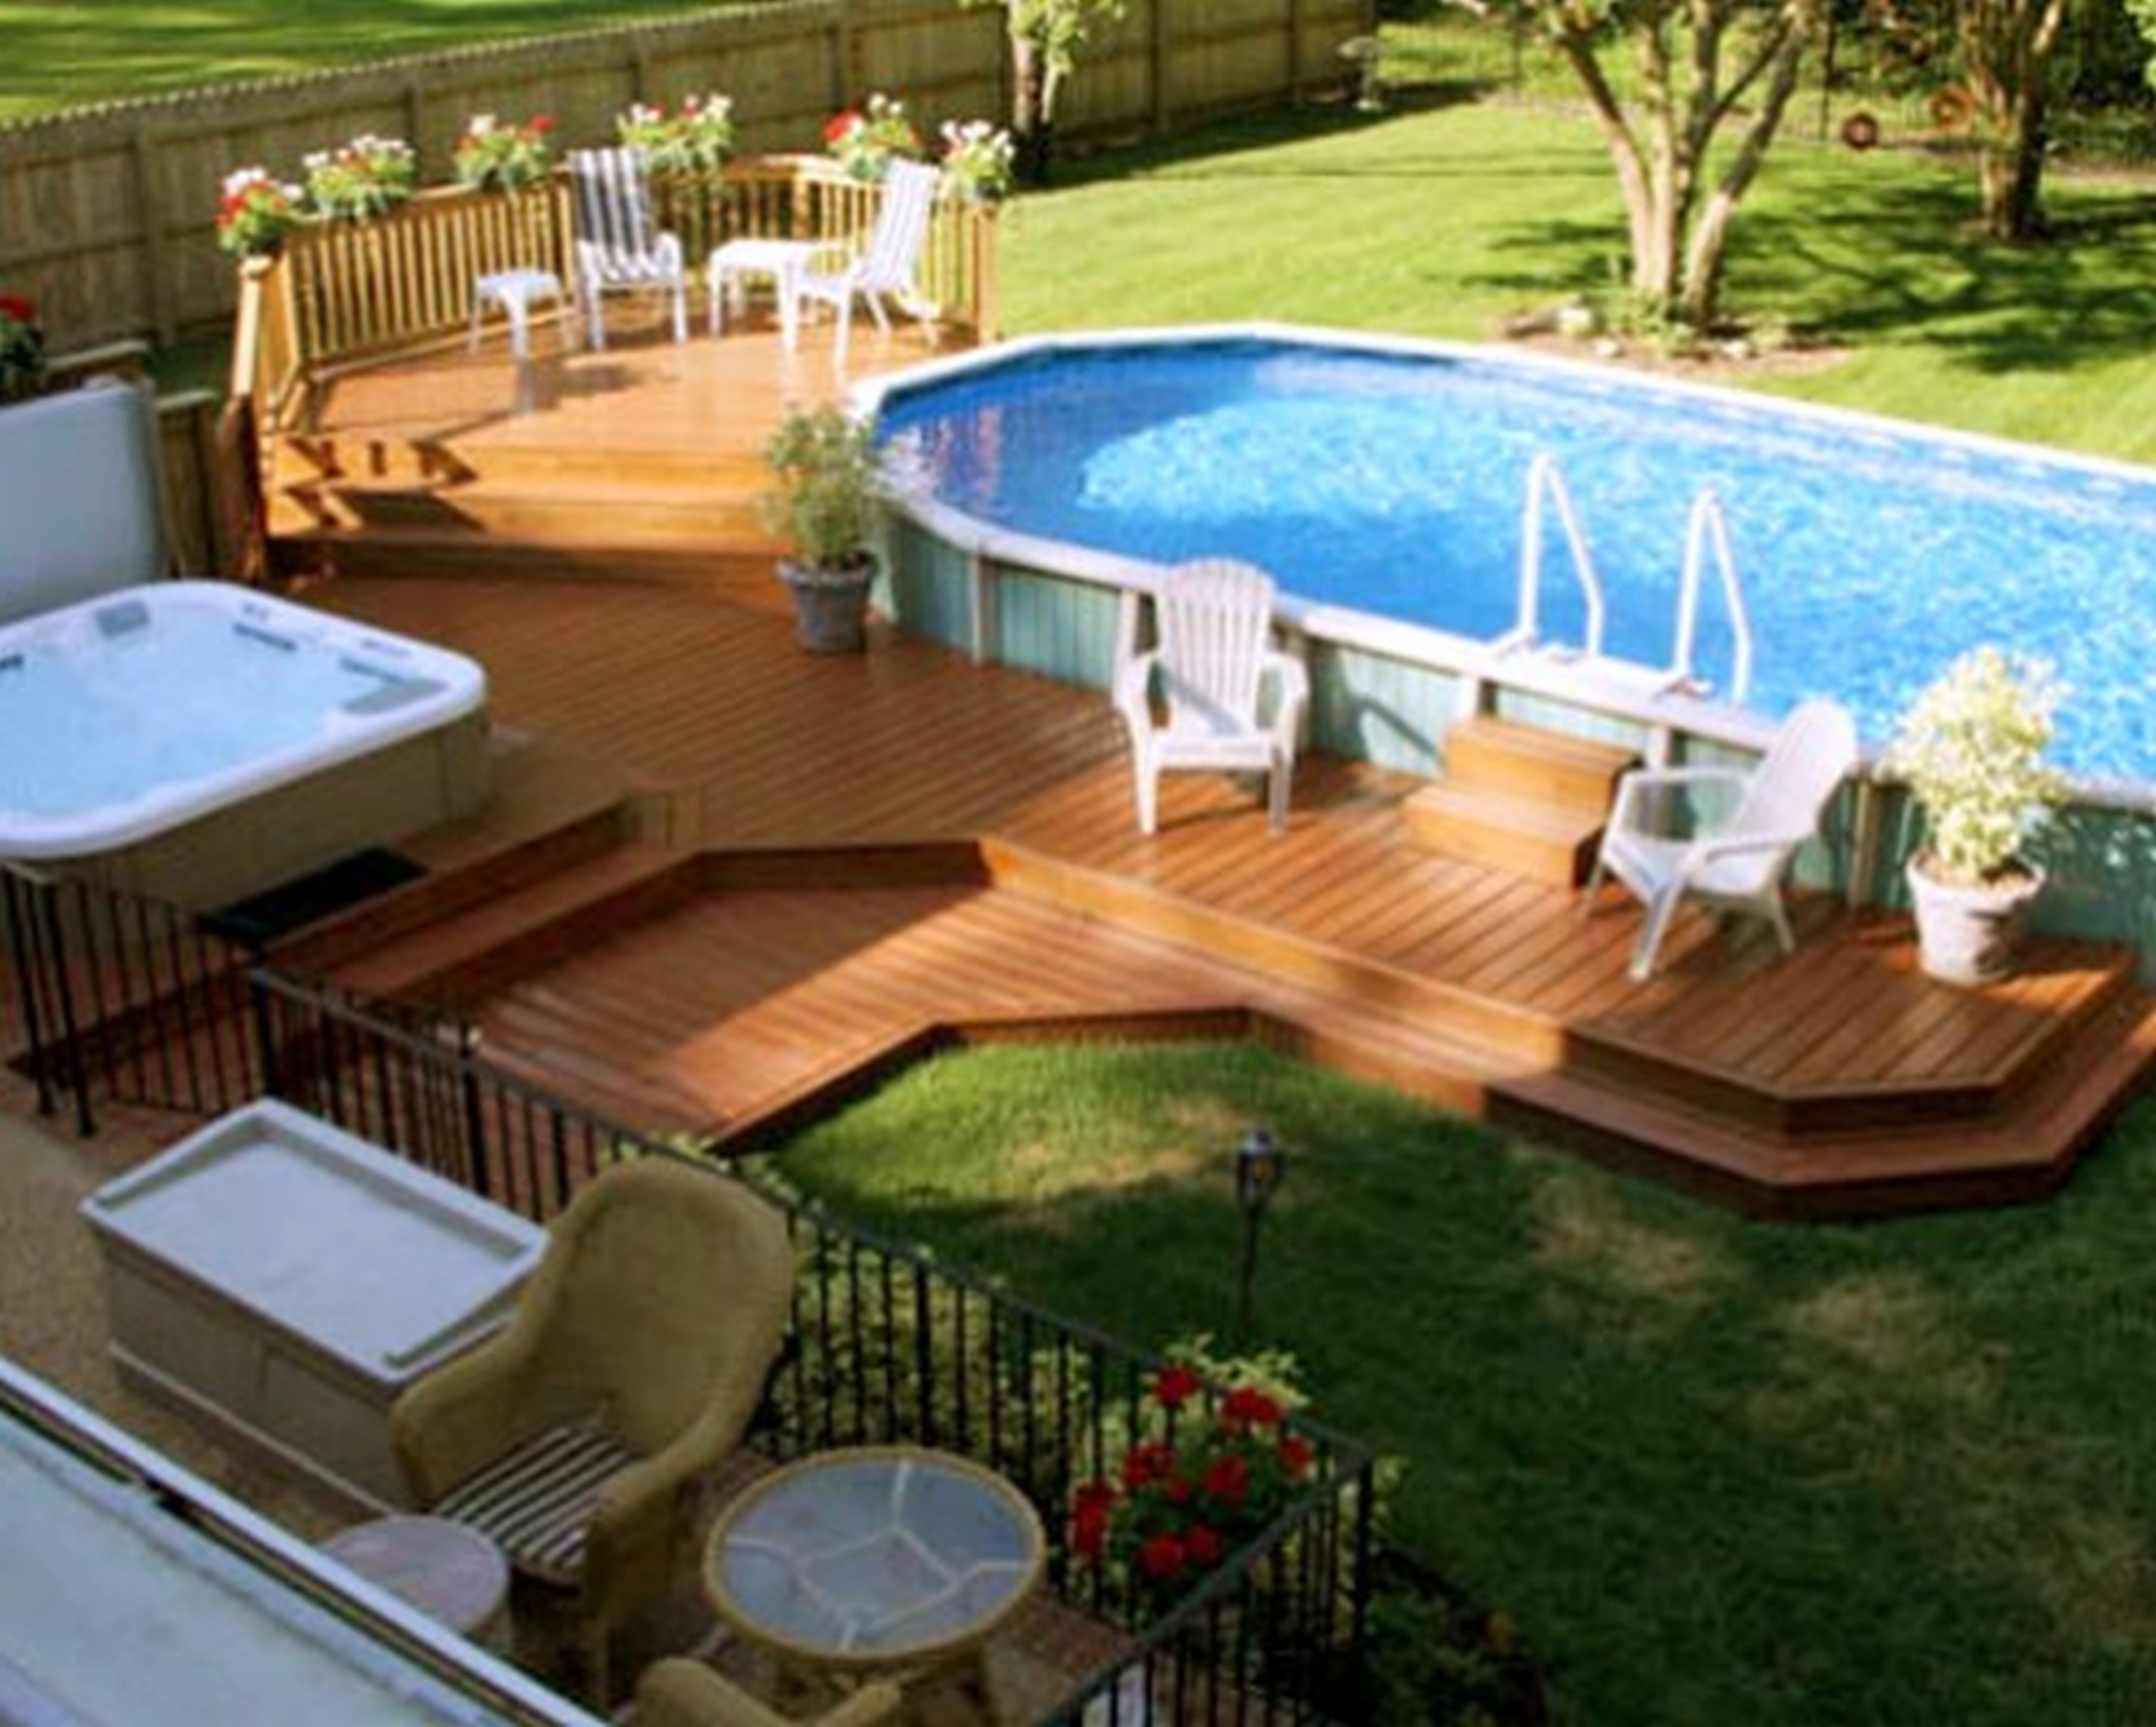 93 Awesome Swimming Pools Backyard Landscaping Ideas 46 Pool Landscape Design Backyard Pool Landscaping Above Ground Pool Landscaping